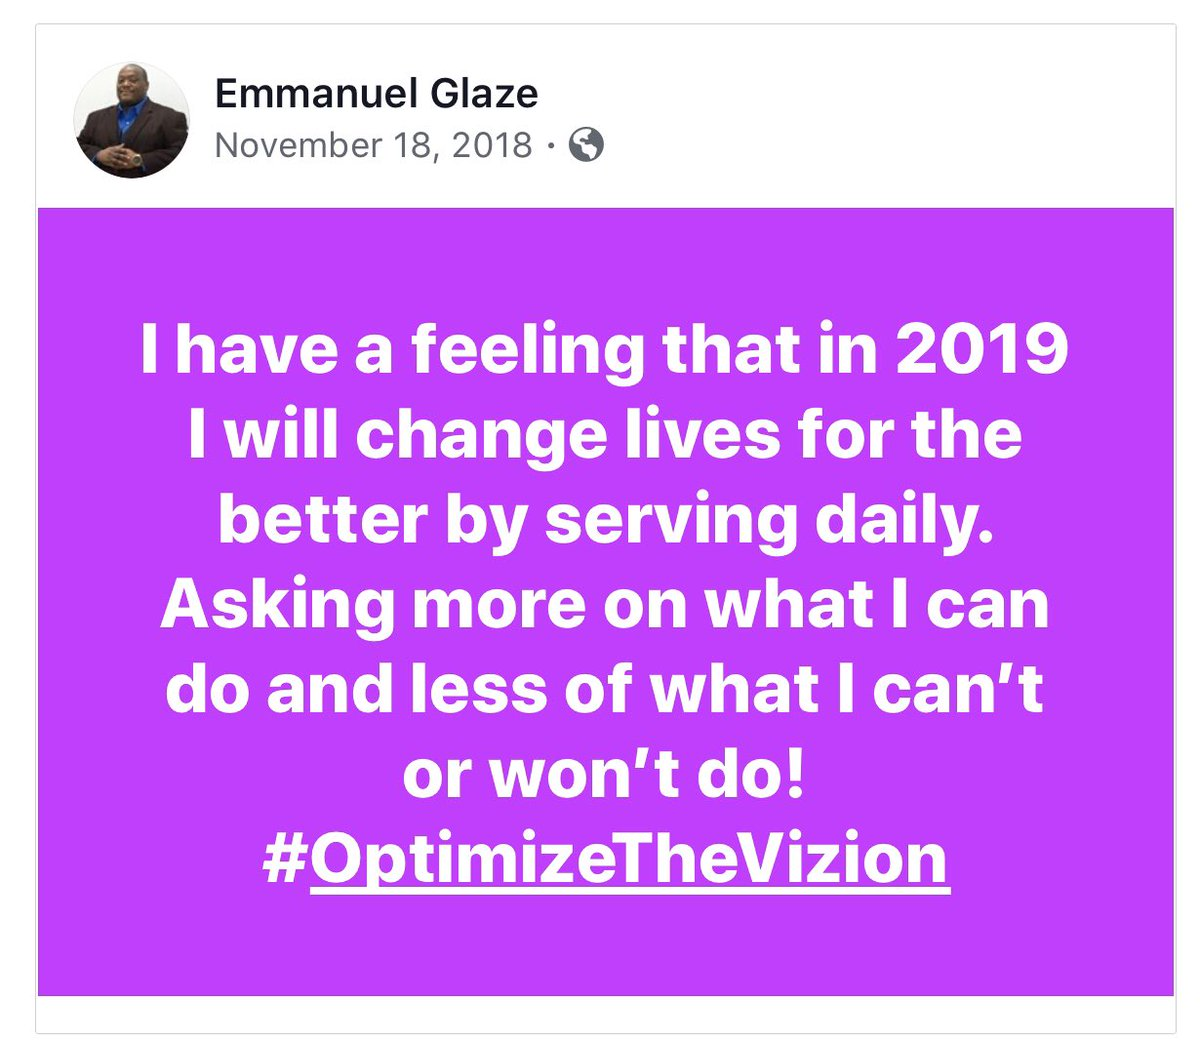 #Facebook posted this reminder of what I said one year ago today. Wow! We spoke it and we were able to achieve it. Now let's continue to grow and build! @optimizethevizion  #sports  #exposure  #possibilities